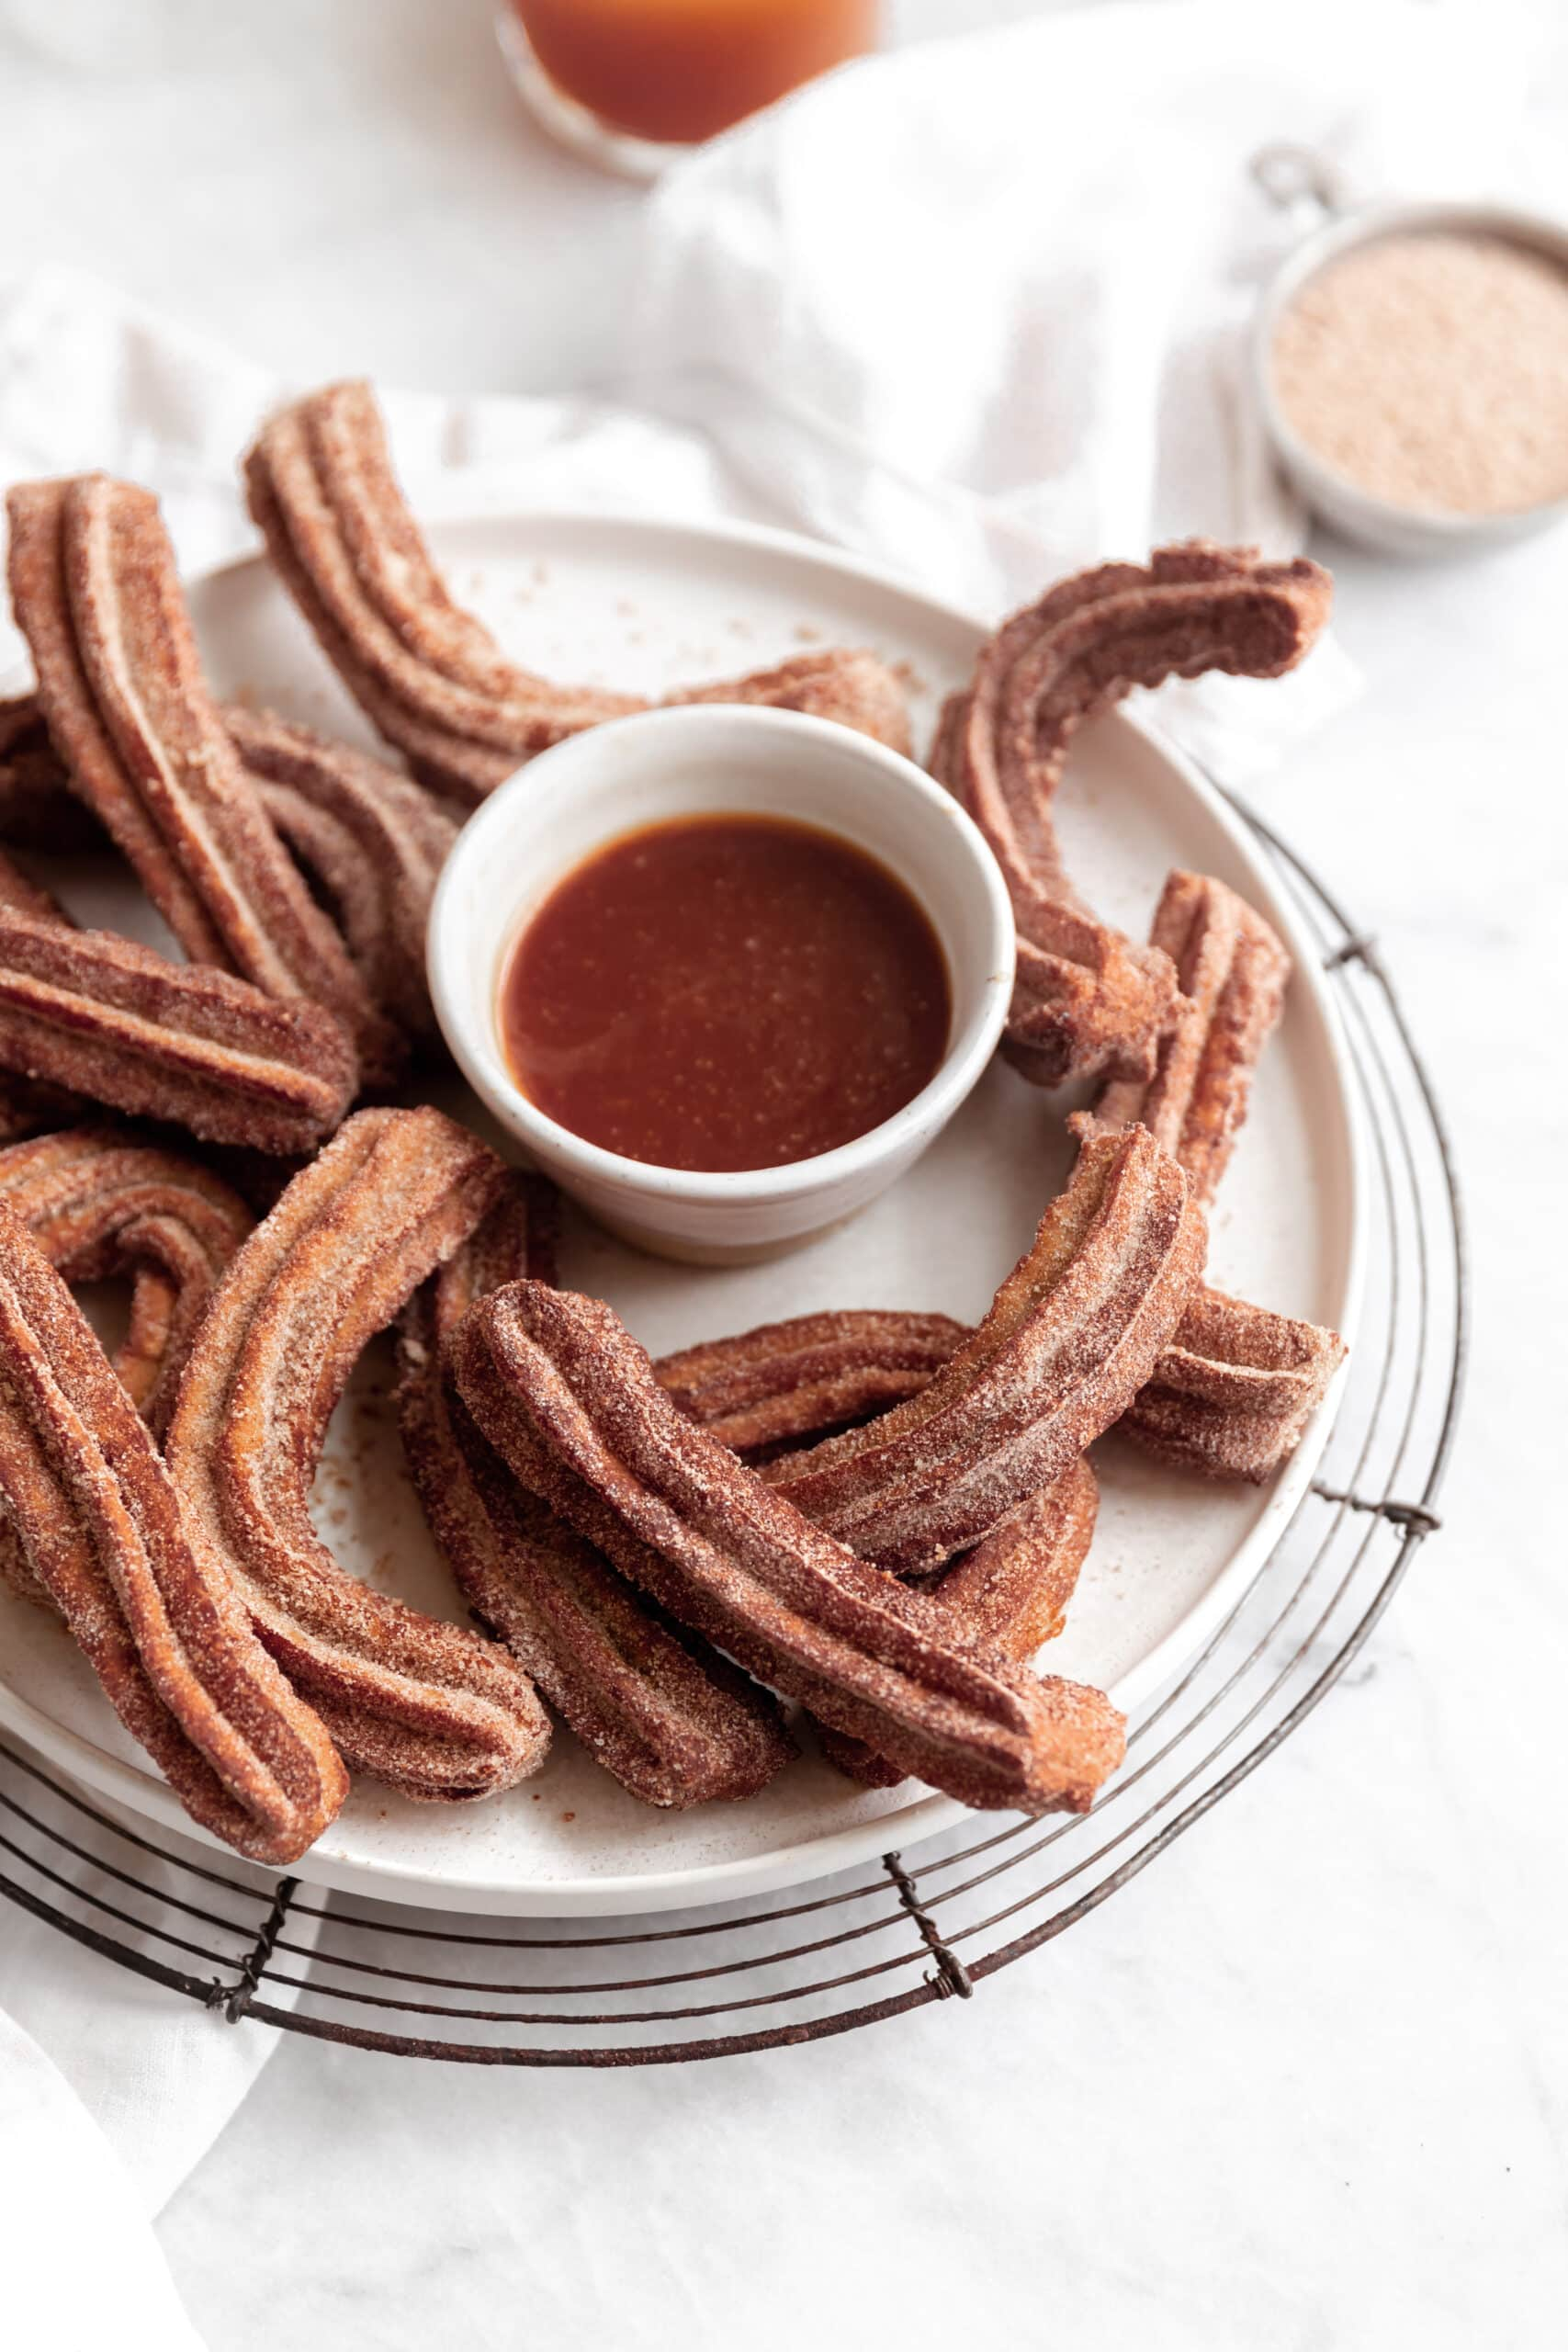 apple cider churros on a plate with caramel sauce